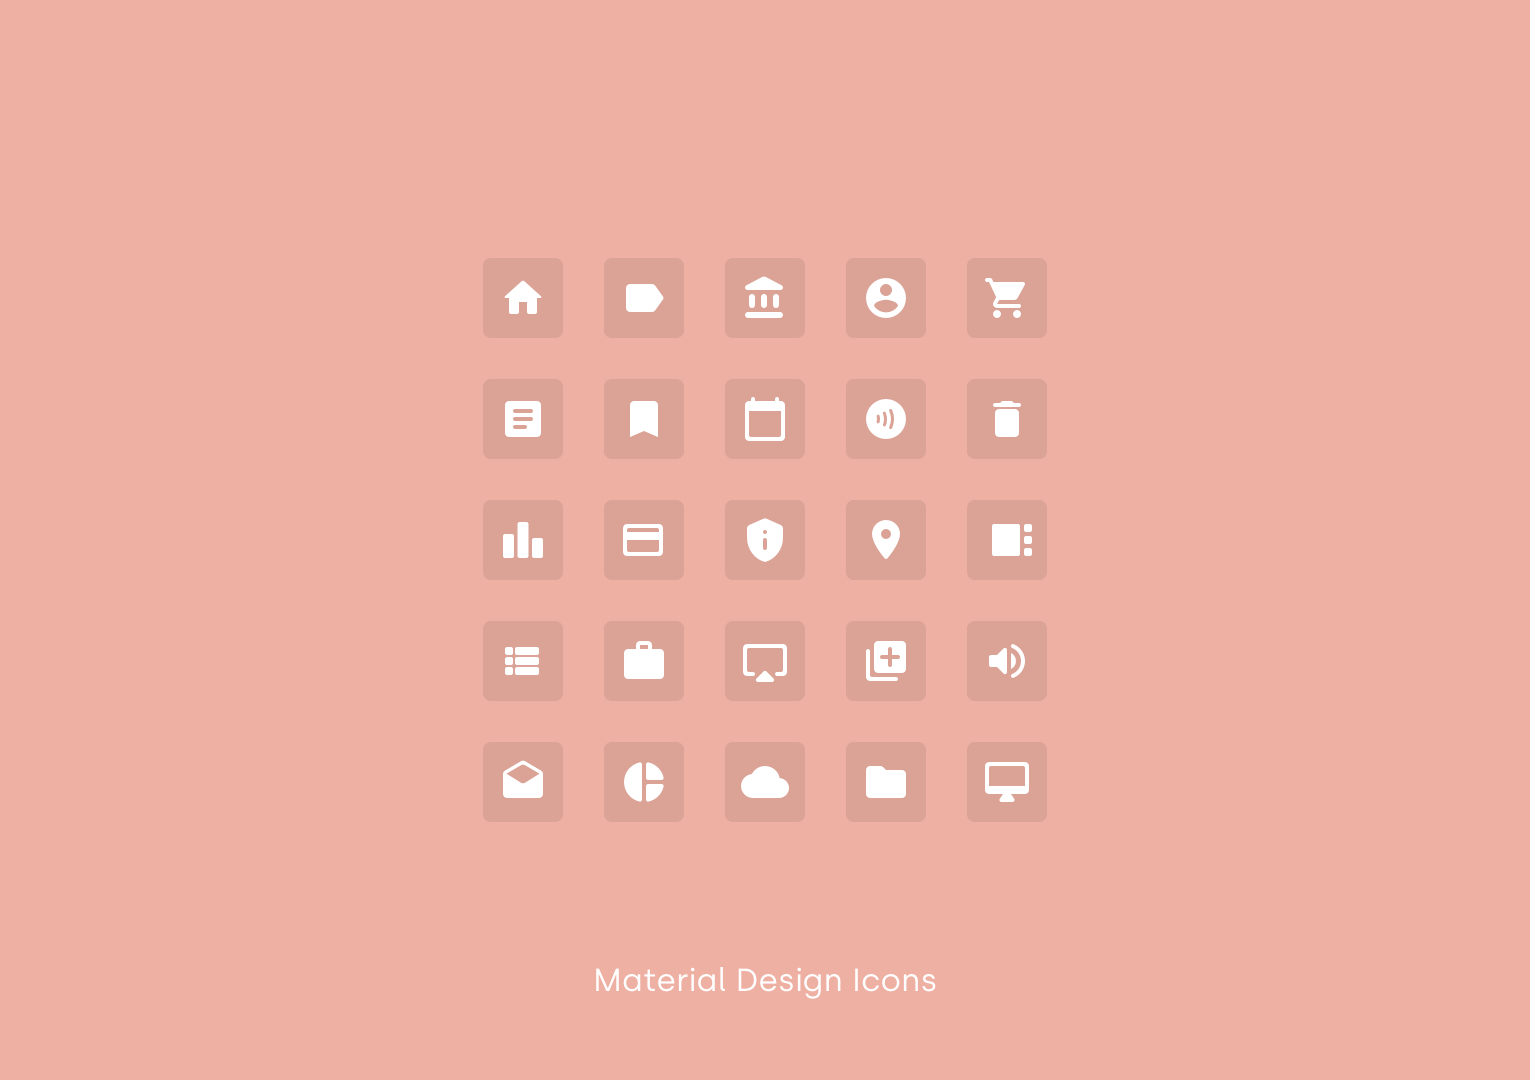 Material Design Icons by Google Material Design Icons